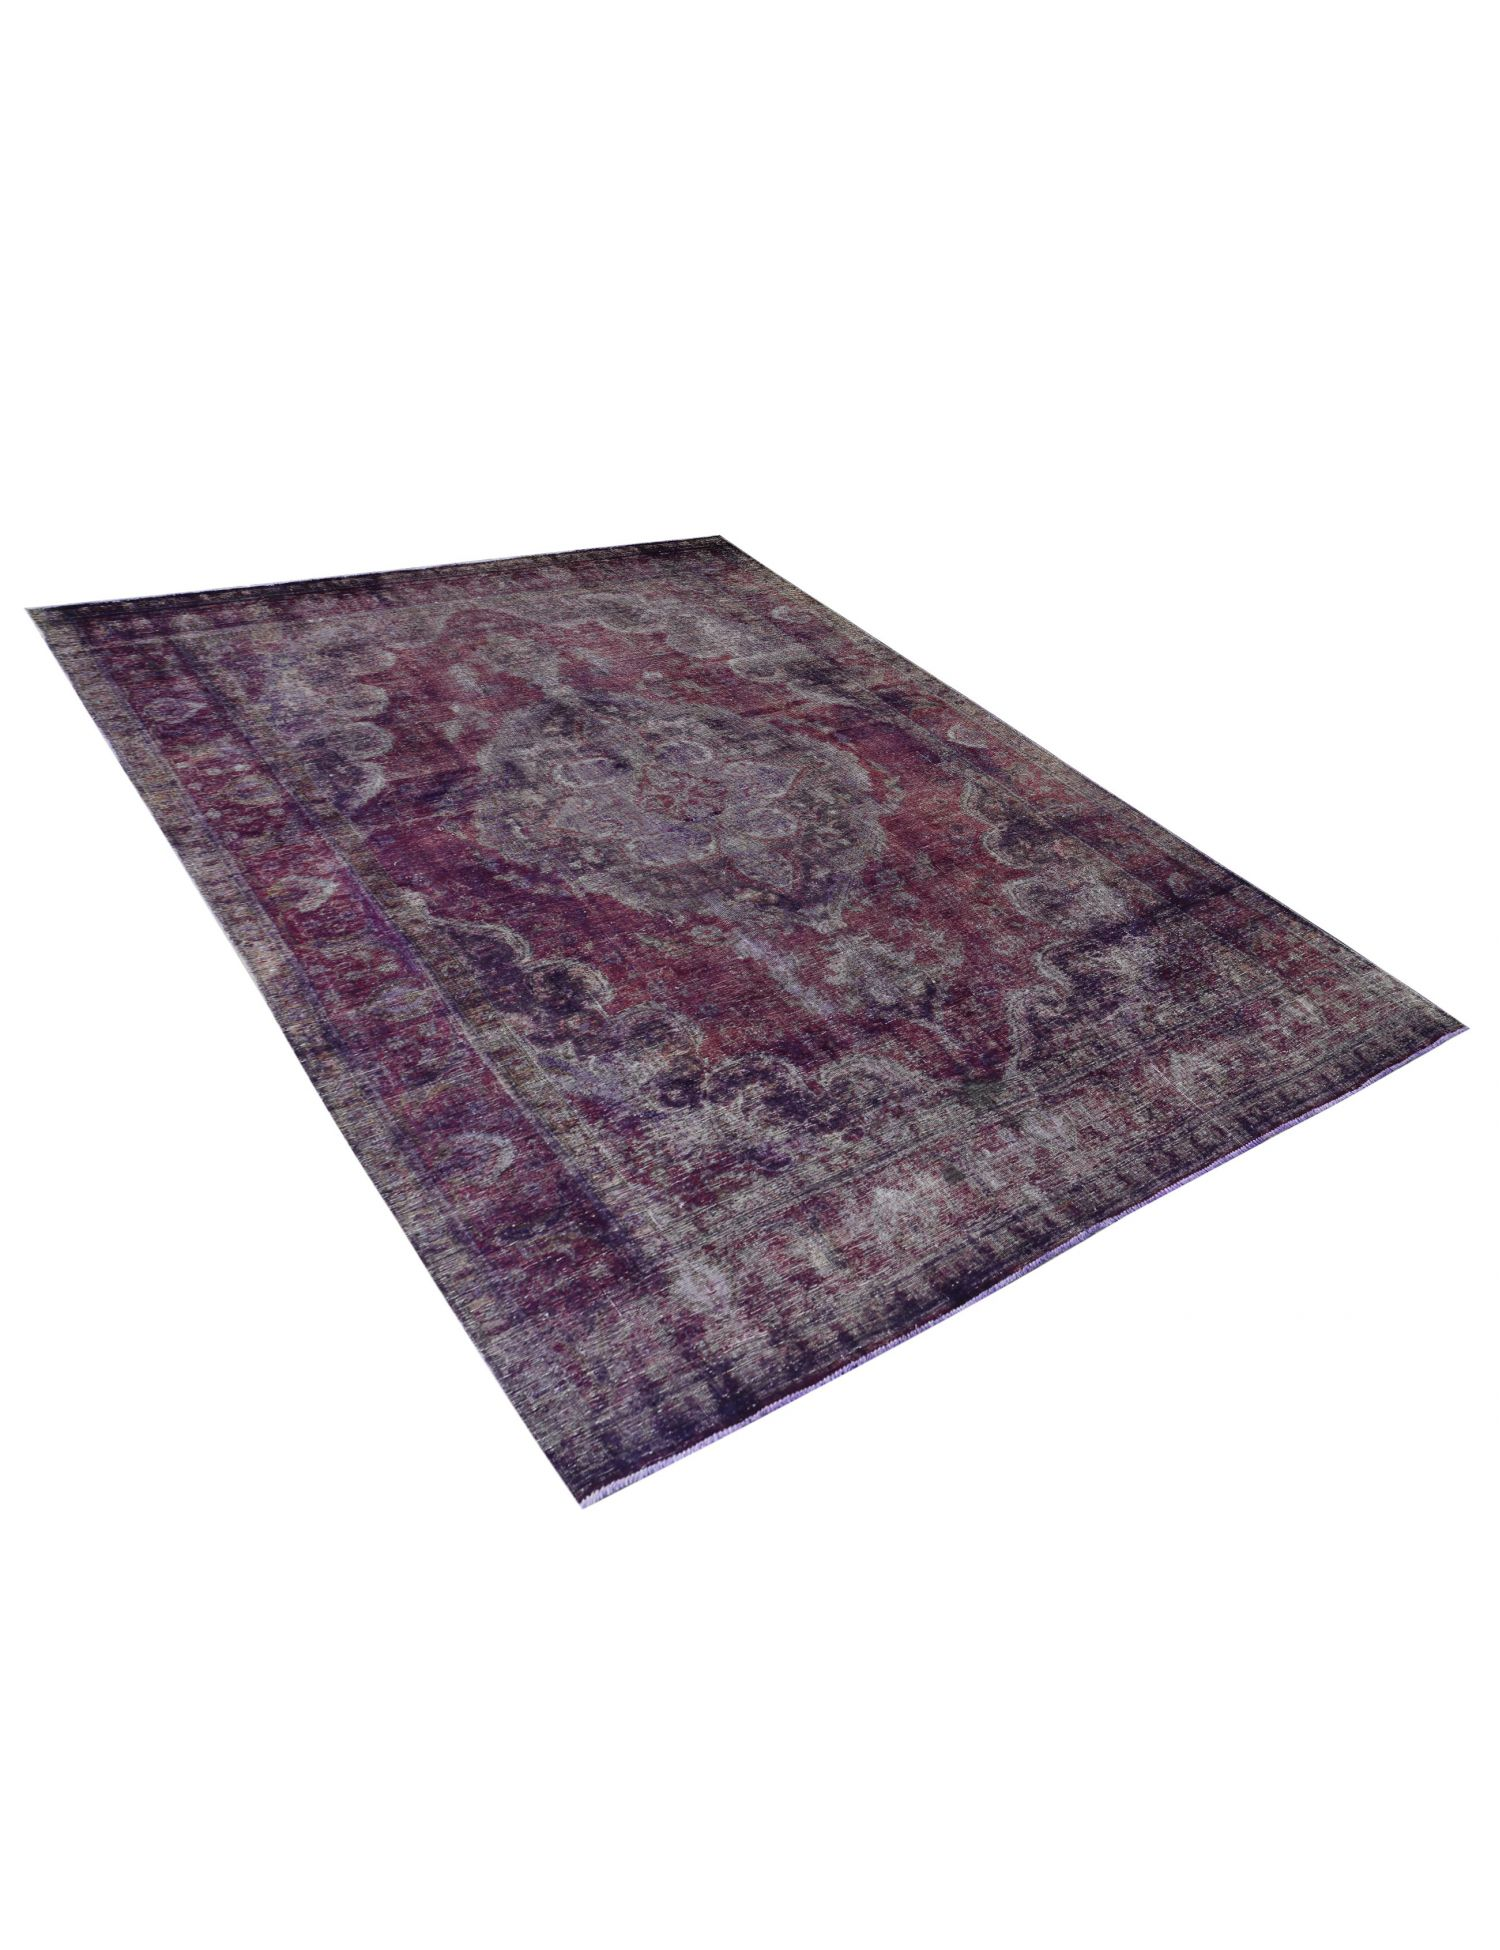 Vintage Carpet  purple <br/>400 x 285 cm